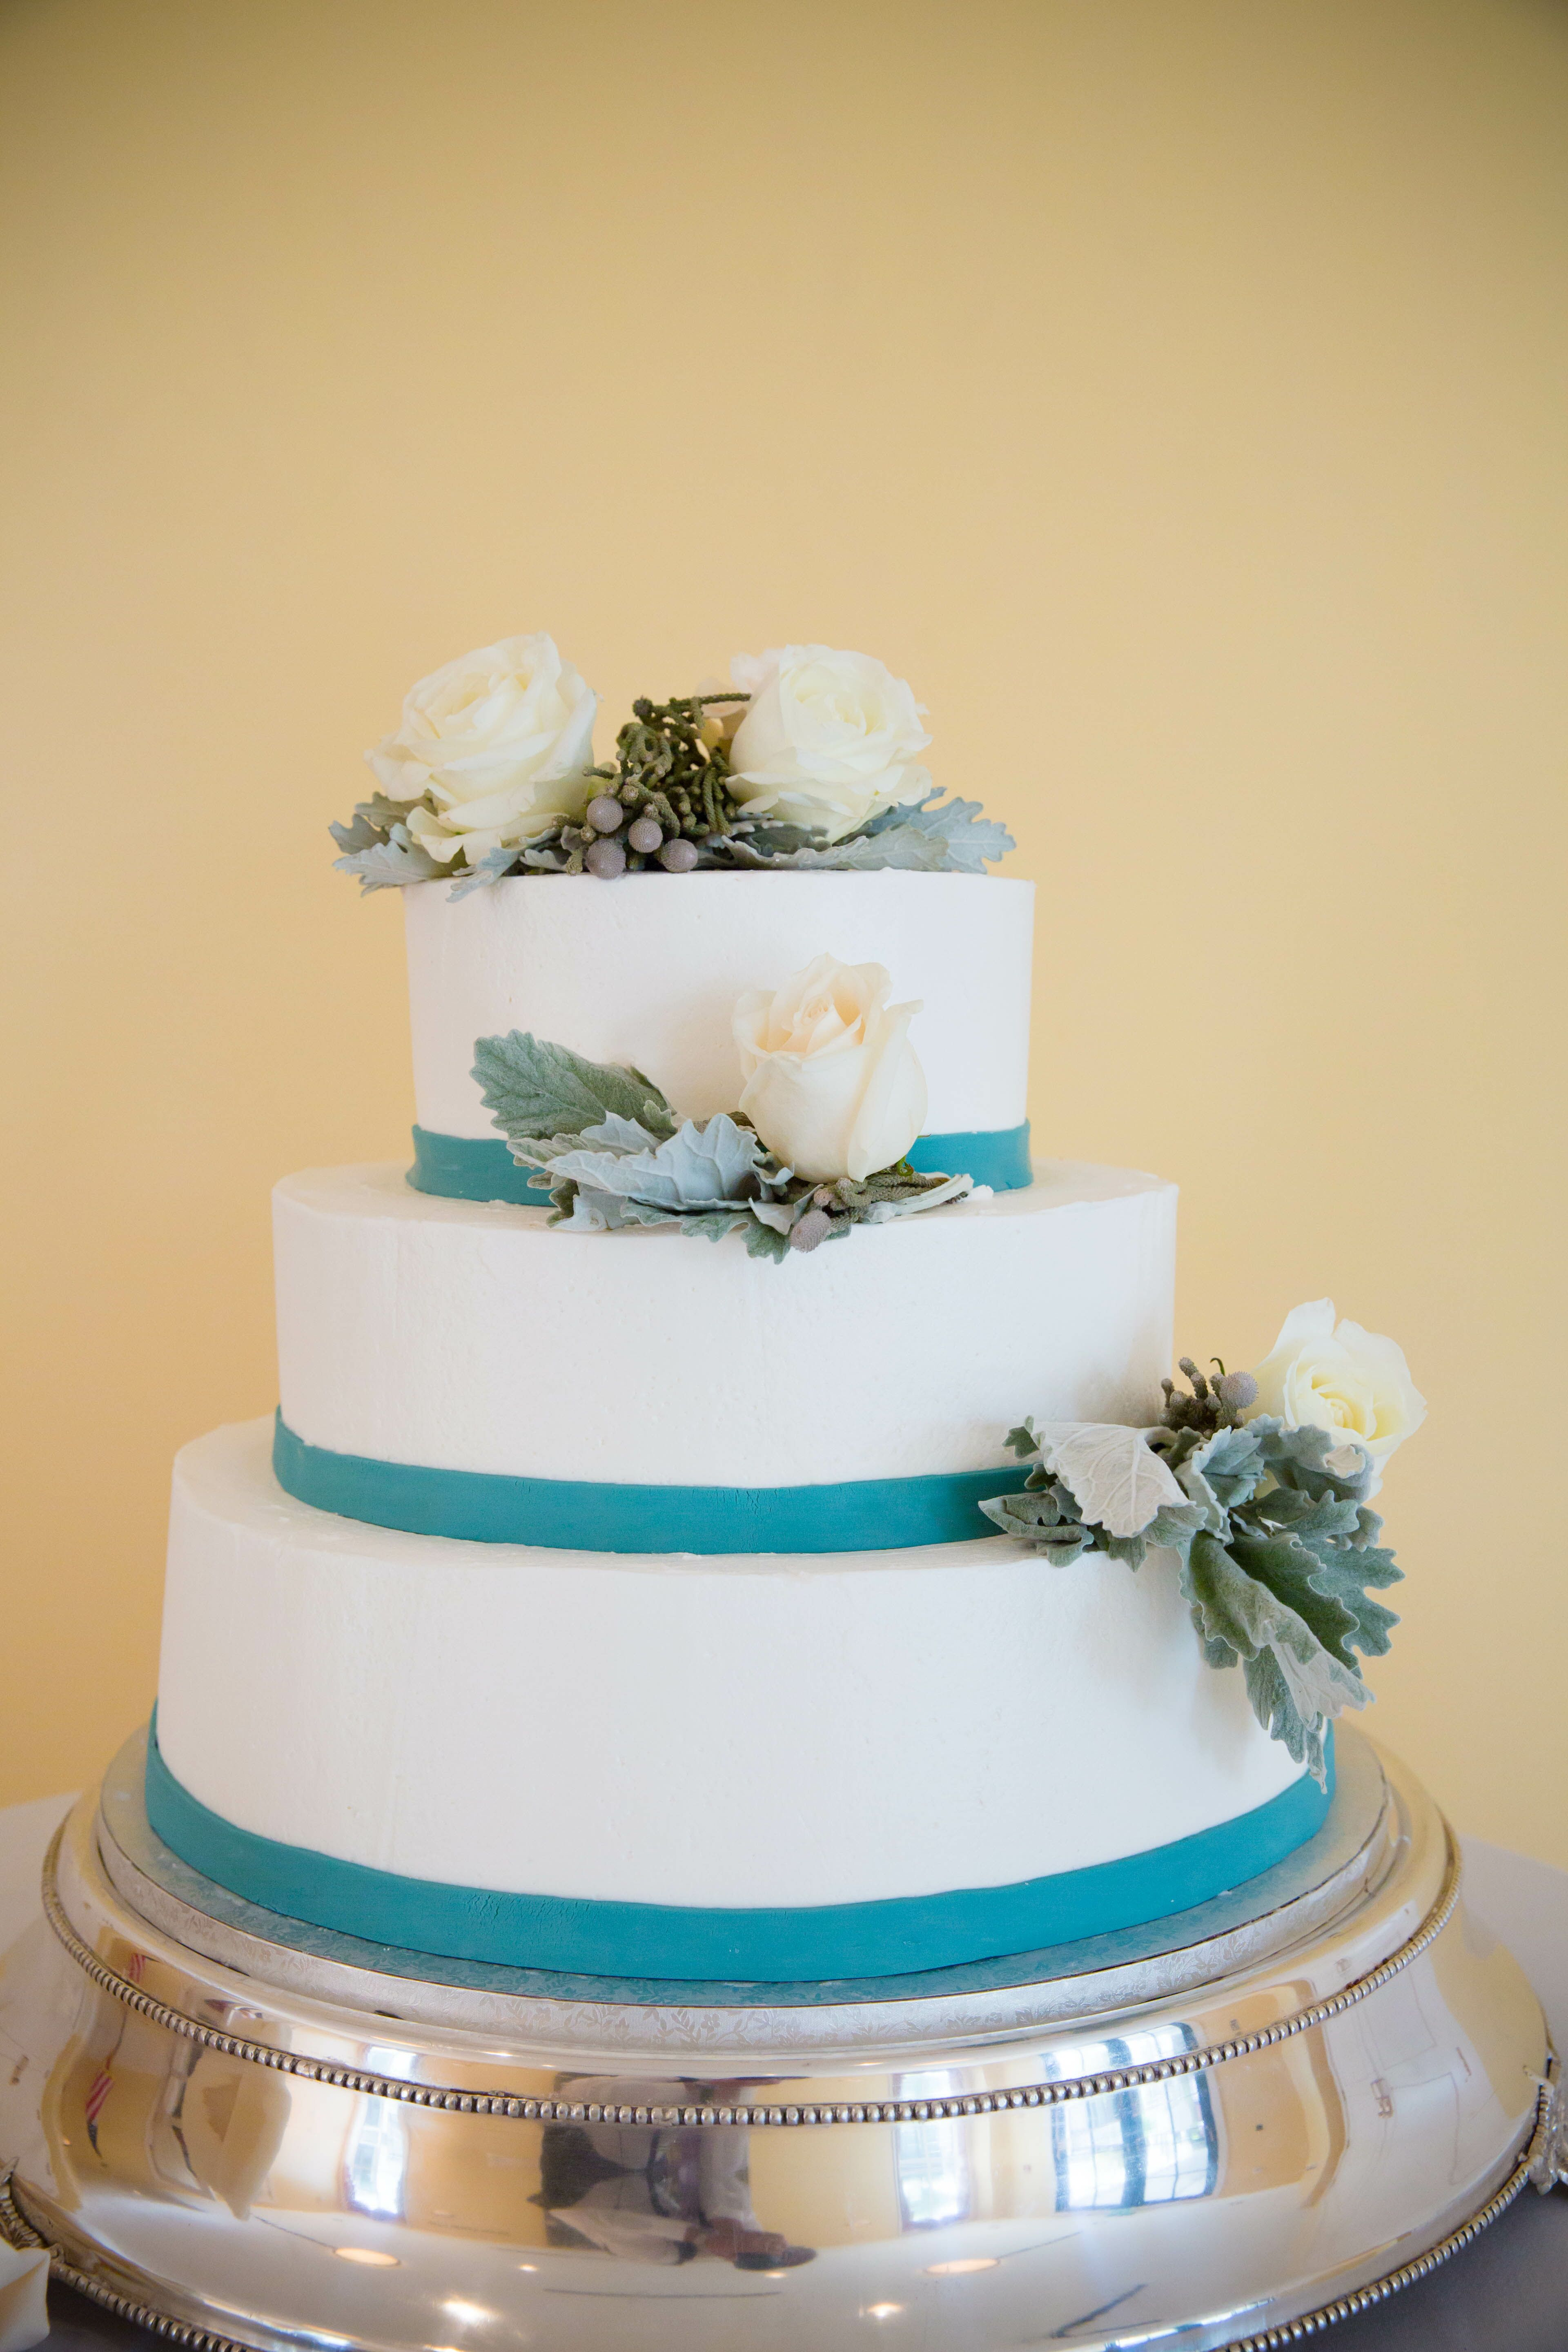 Ivory and Teal Tiered Wedding Cake